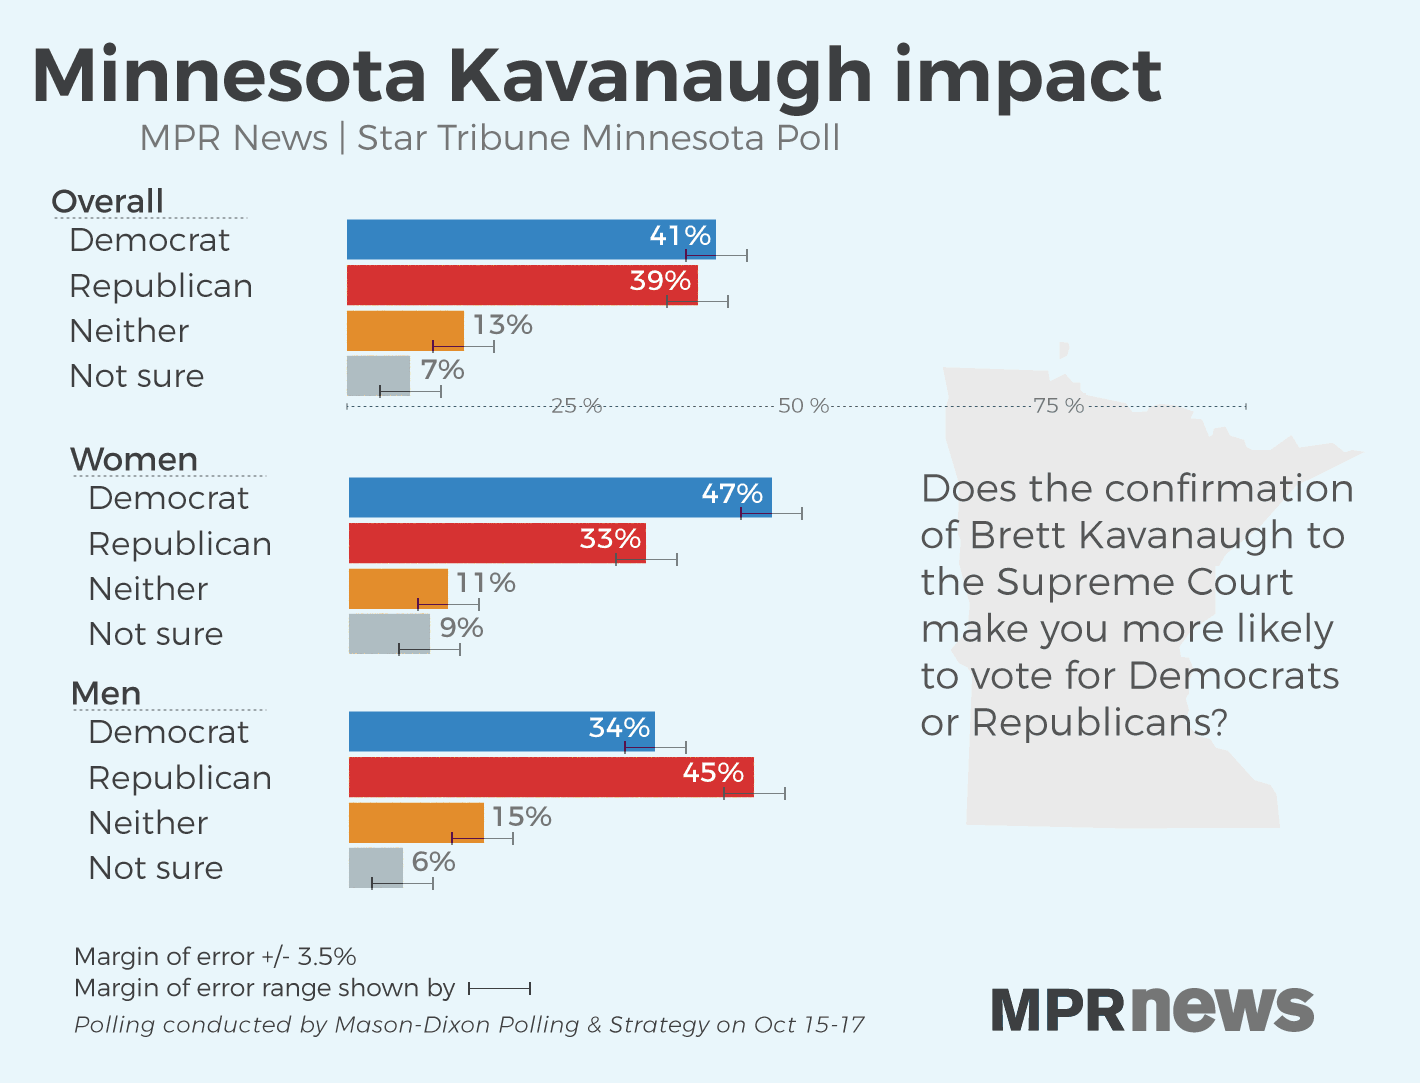 The confirmation of Kavanaugh exposed gender splits in party support.